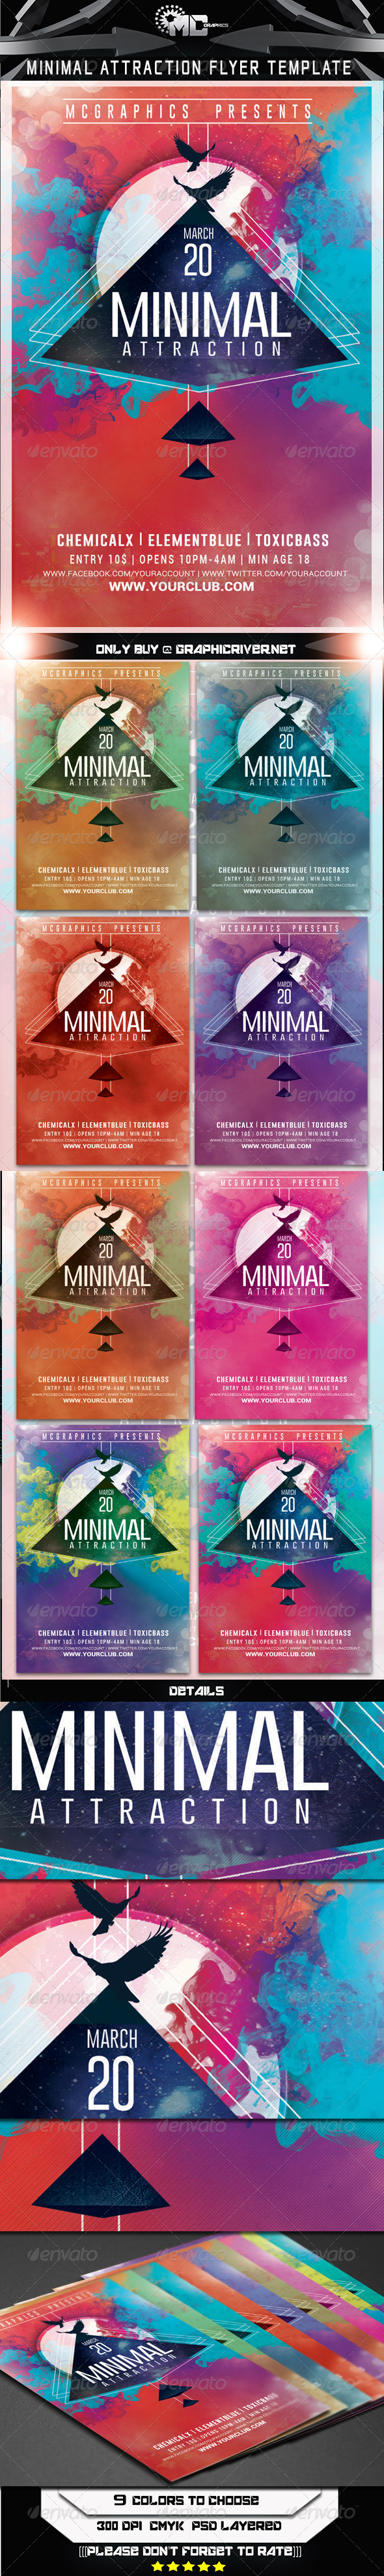 GraphicRiver Minimal Attraction Flyer Template 7415410